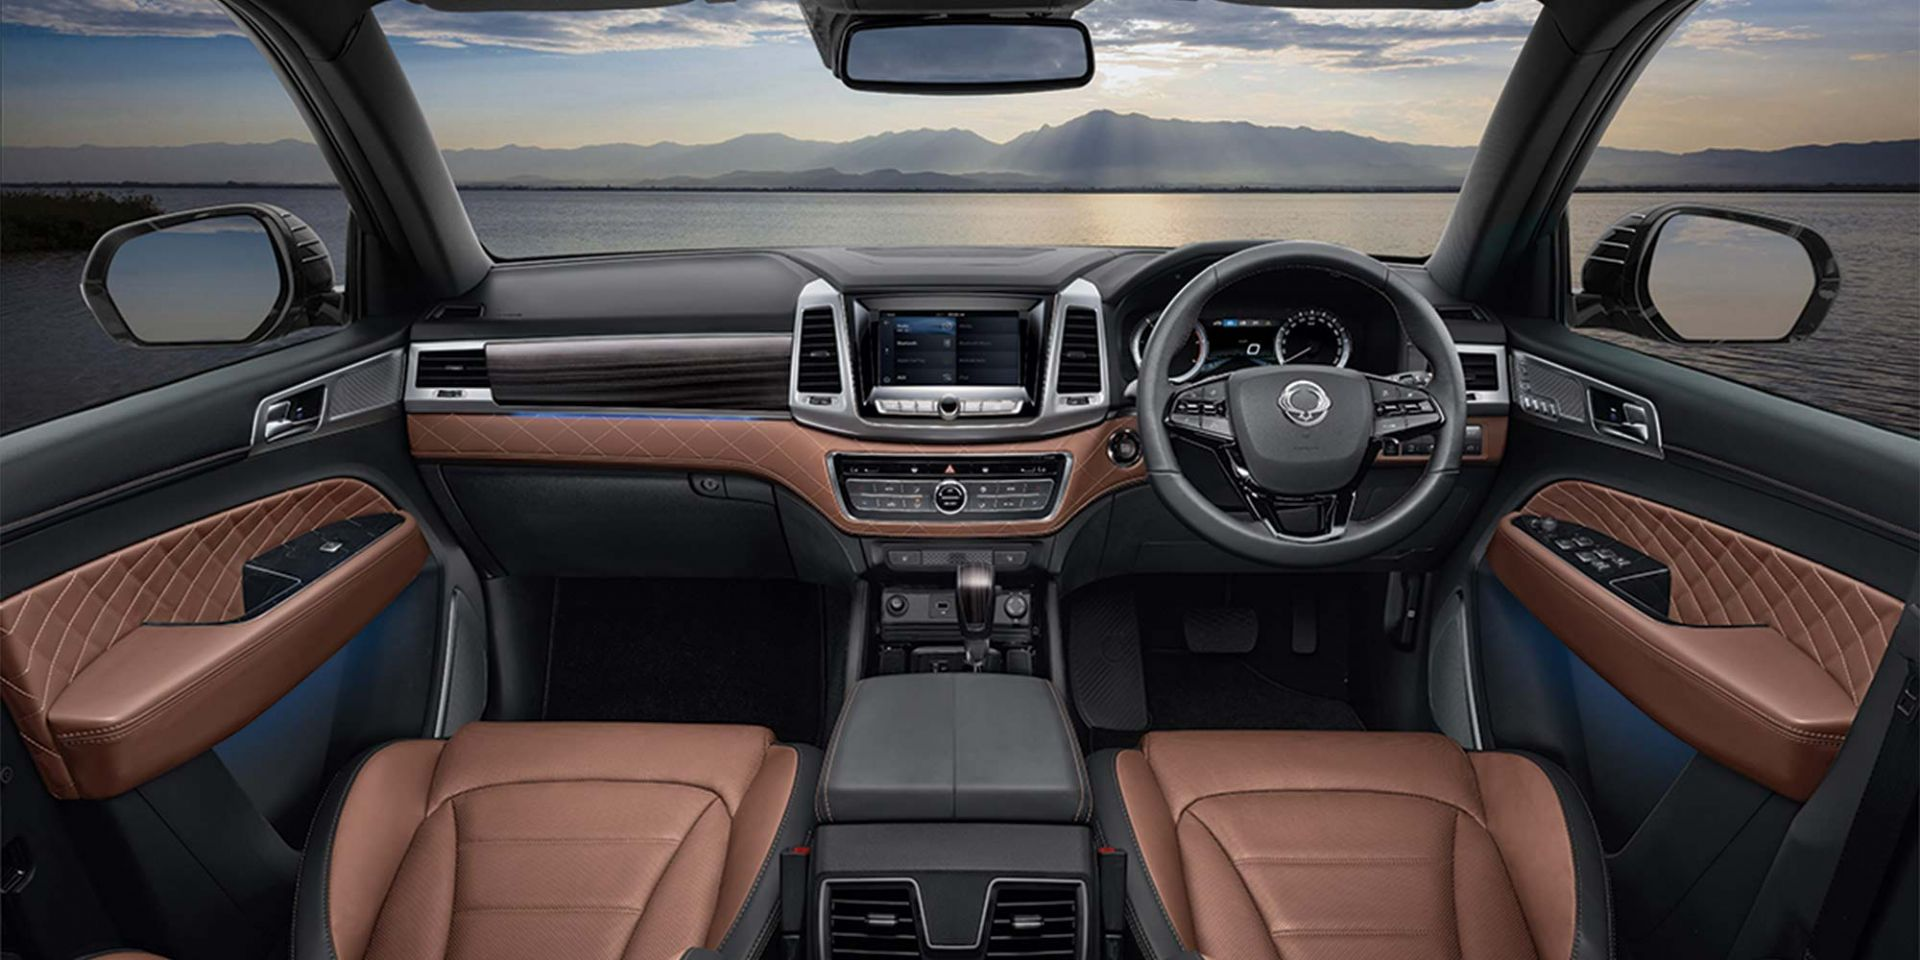 ssangyong-rexton-luxury-family-4wd